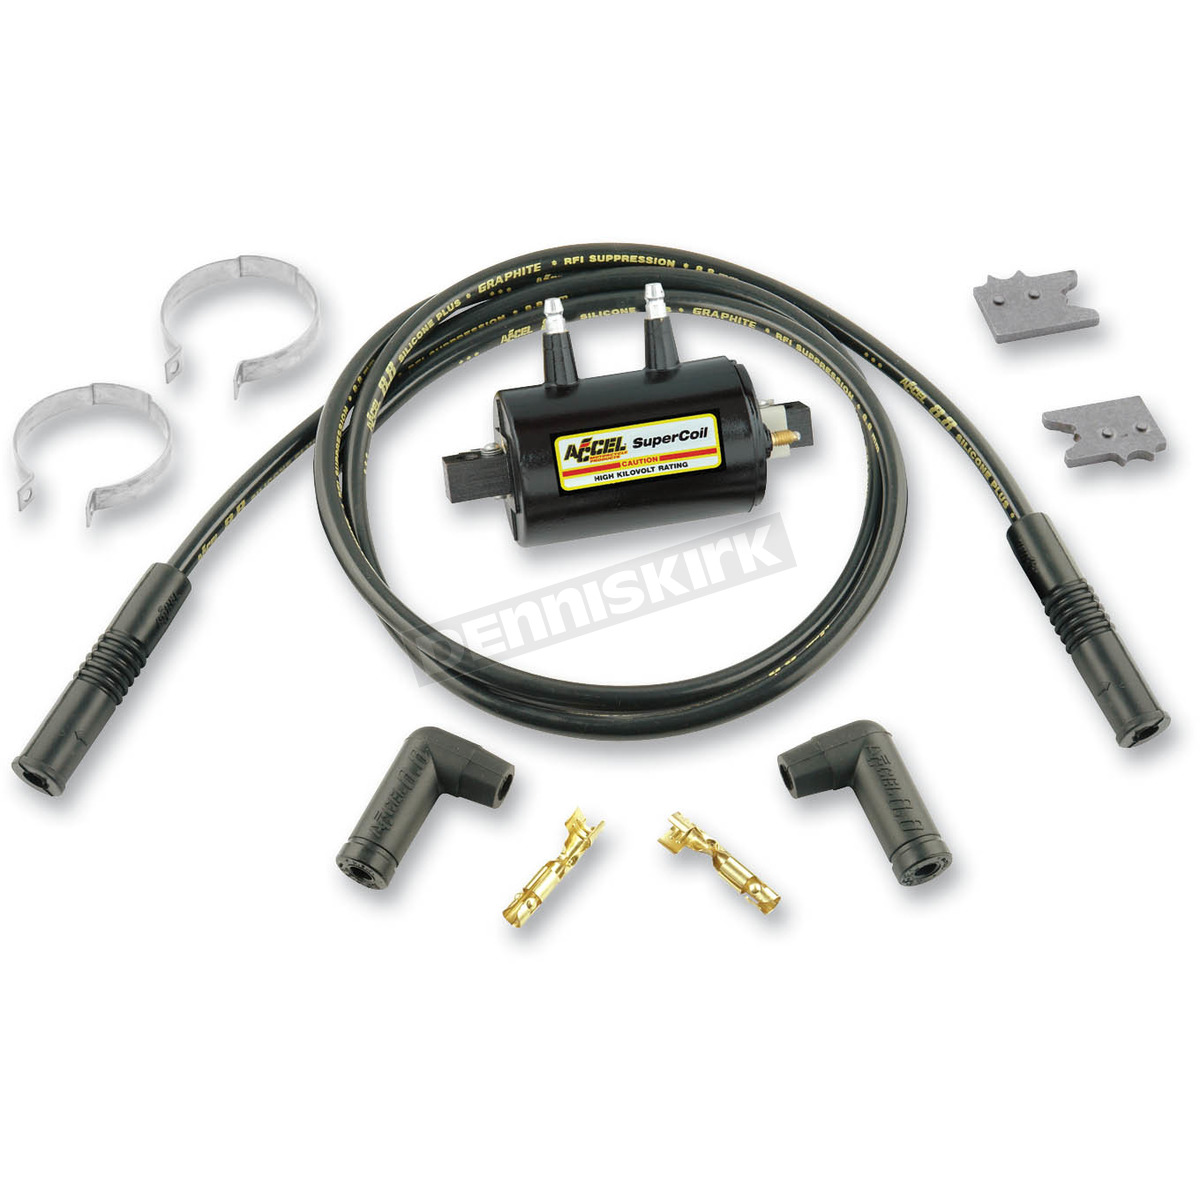 Accel 3.0 Ohms Super Coil Kit - 140405K Harley-Davidson Motorcycle on accel super coil wiring, accel distributor diagram, accel ecm wire diagram, hei ignition coil diagram, accel super stock coil 8140, accel ignition diagram, accel coil wire, accel hei ignition wiring, accel hei super coil distributor, ford ignition coil diagram, accel super coil 140001 installation, accel ignition coil pack, ignition coil circuit diagram,